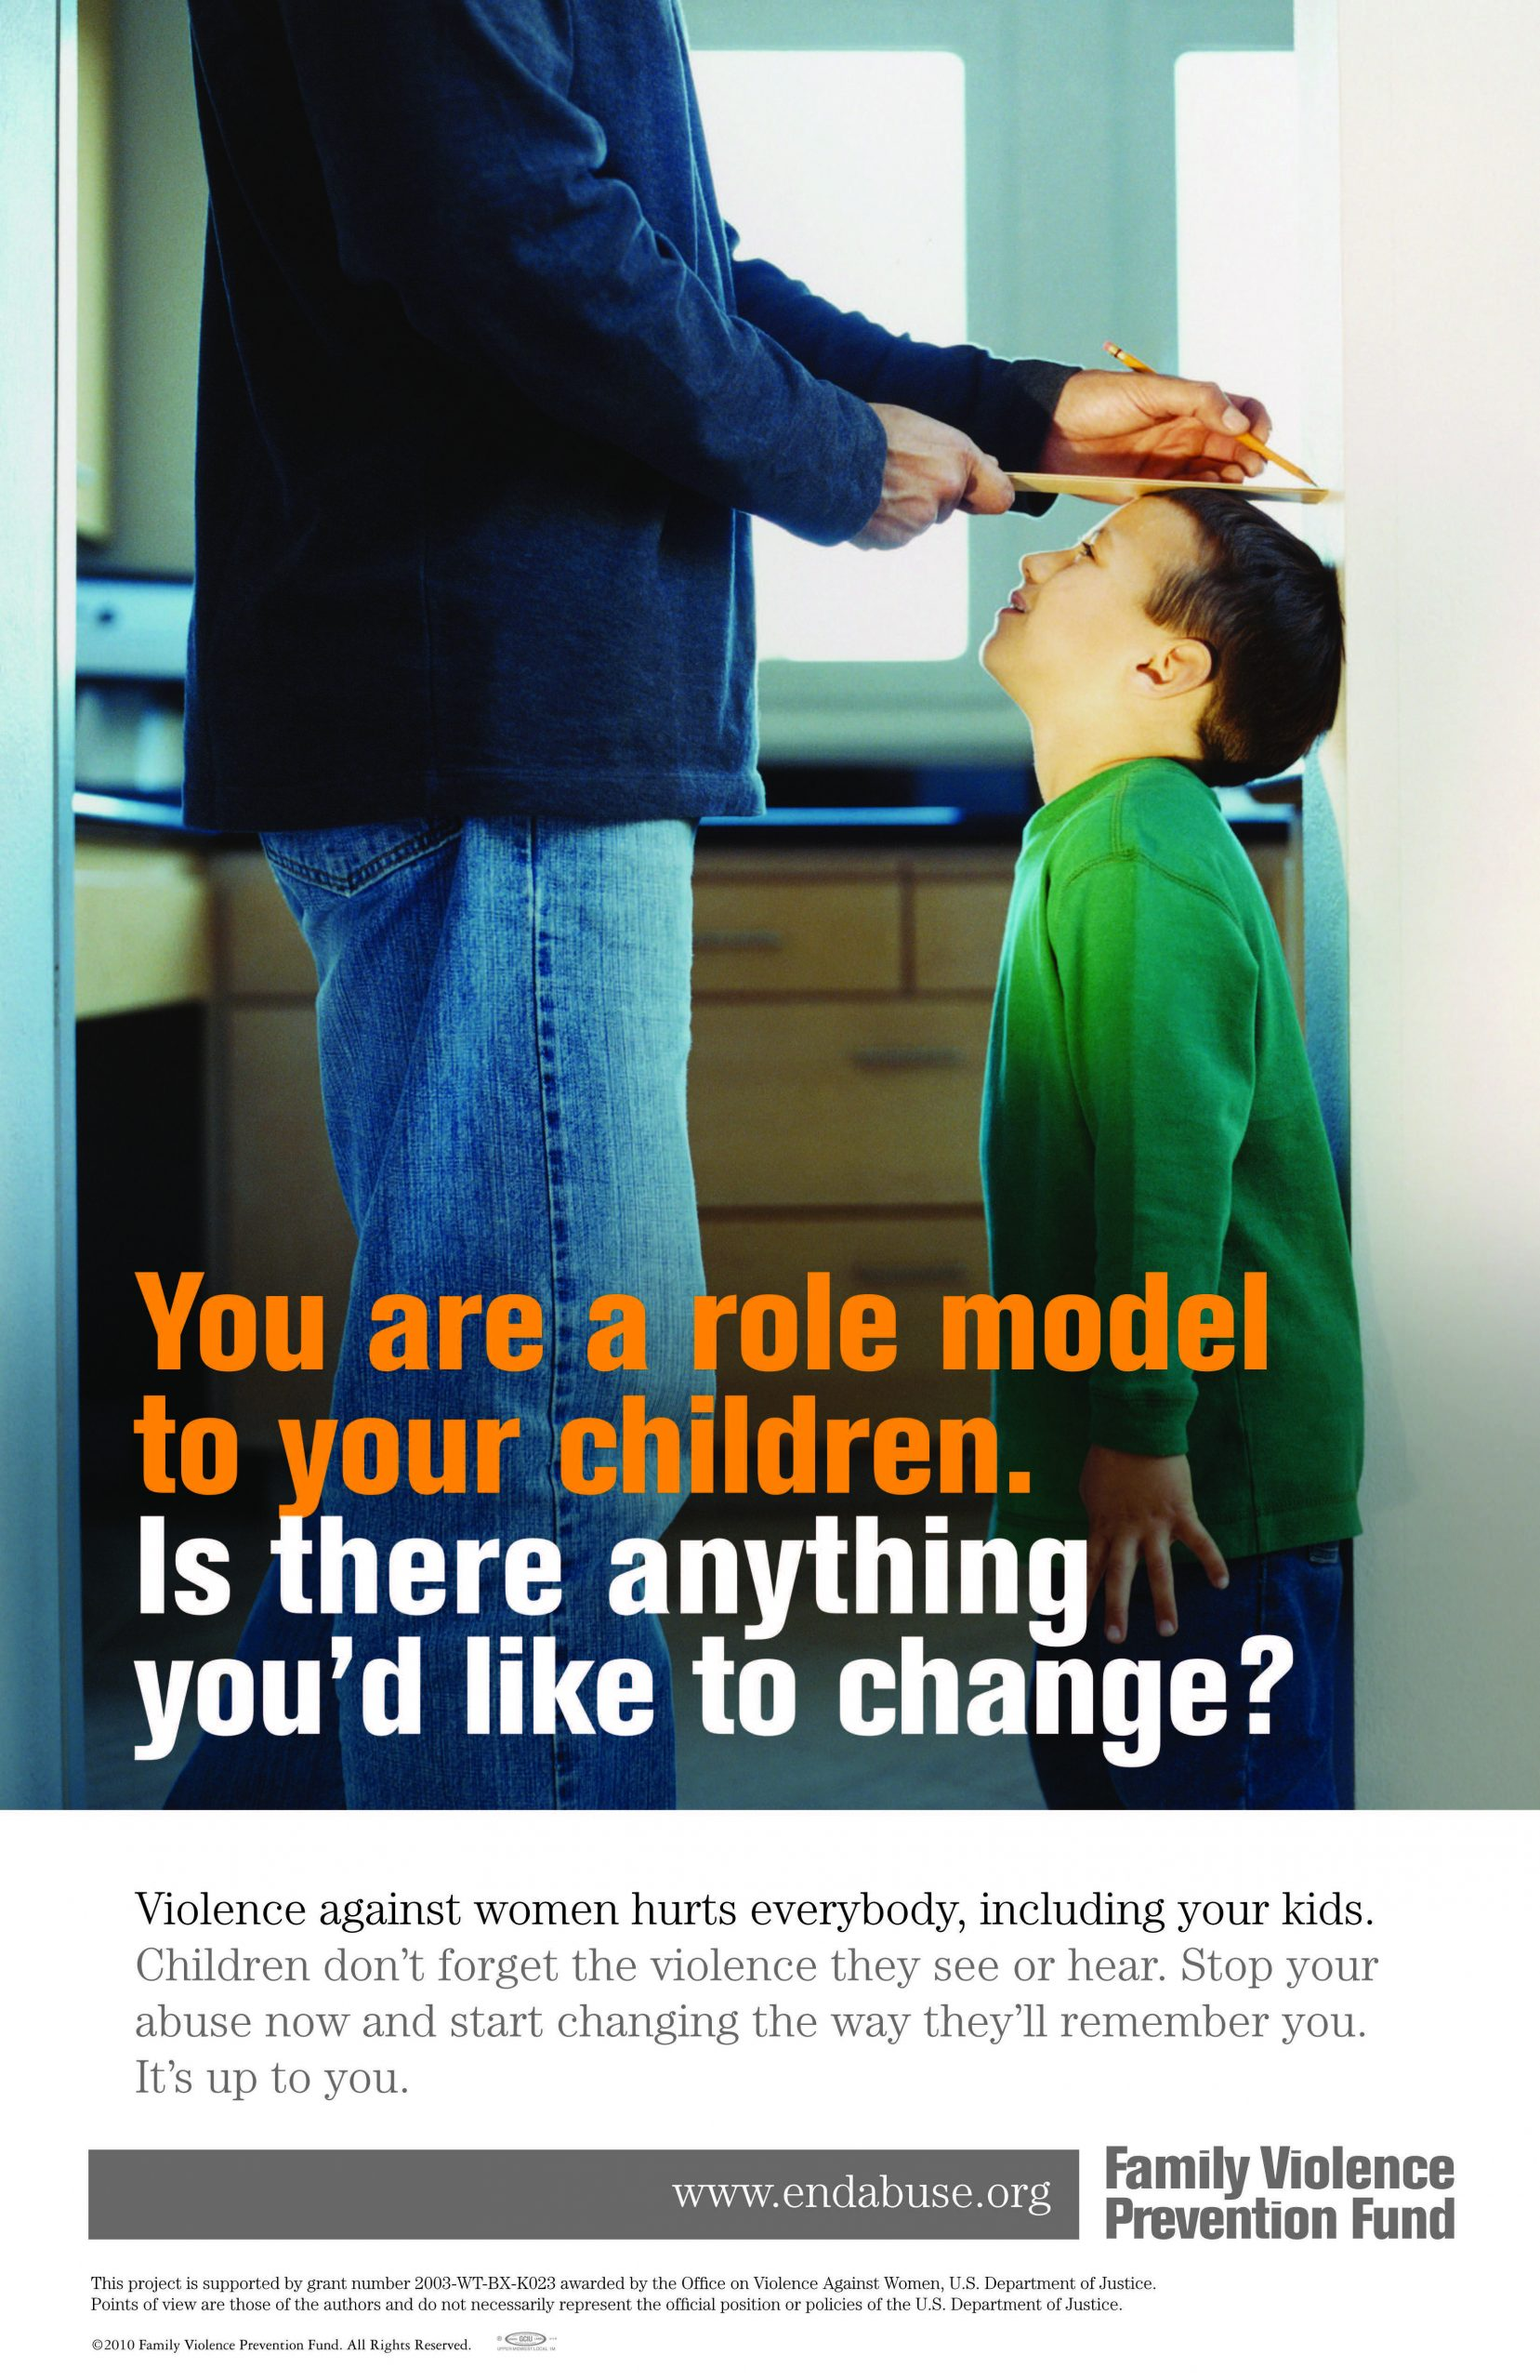 Fathering After Violence poster: Your are a role model to your children. Is there anything you'd like to change?